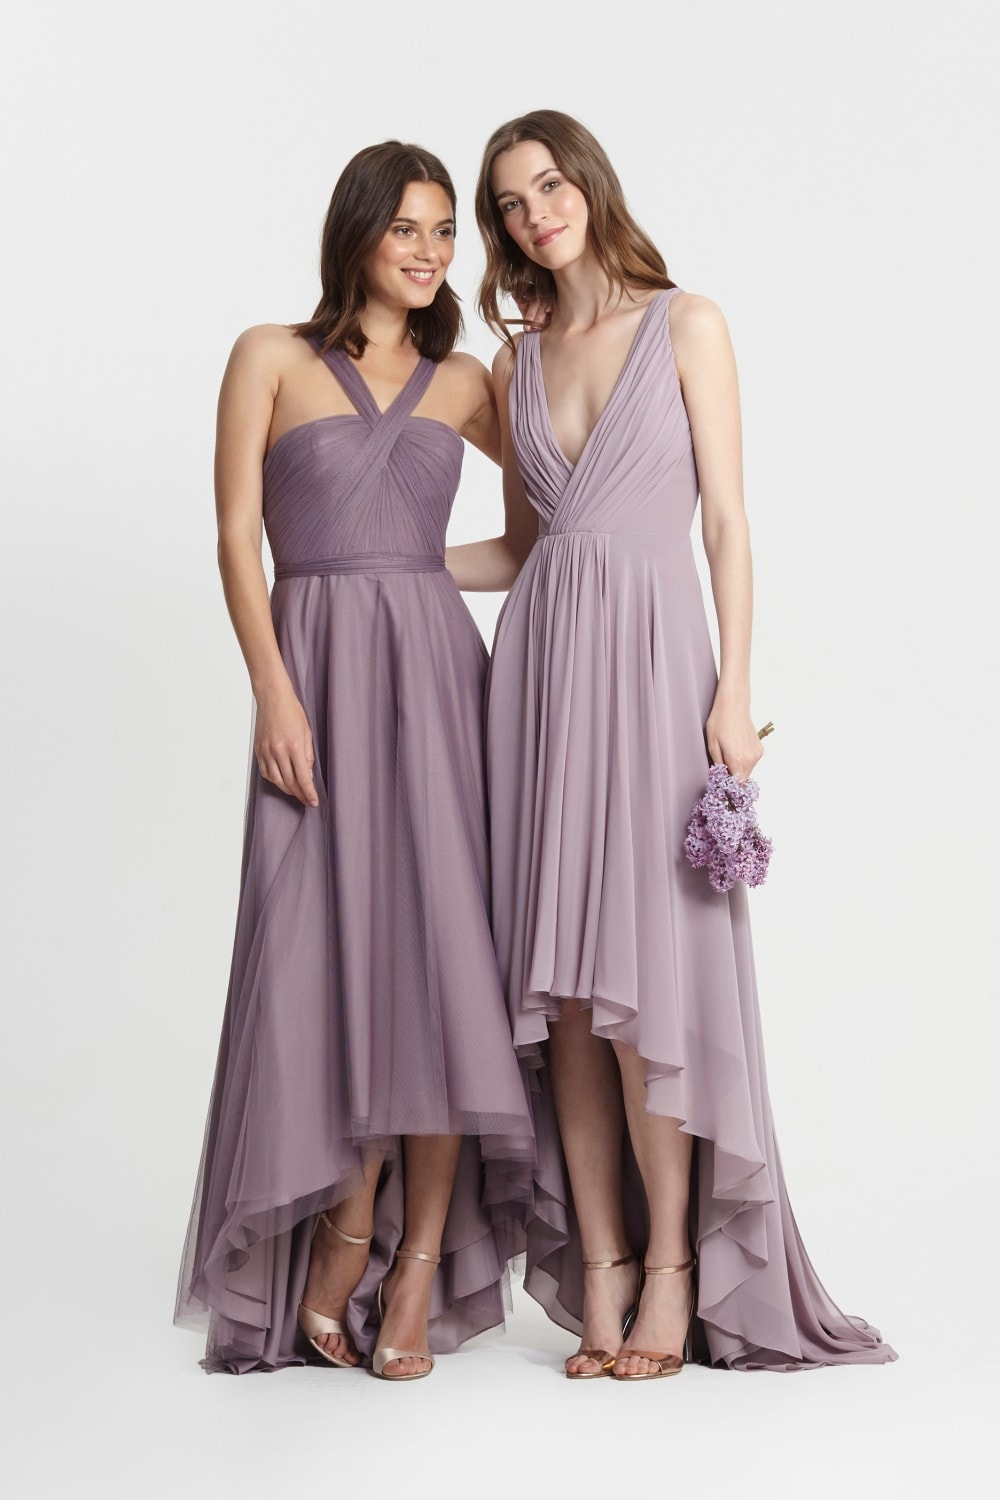 Purple dresses archives at dress for the wedding monique lhuillier bridesmaid dresses for spring 2017 ombrellifo Images